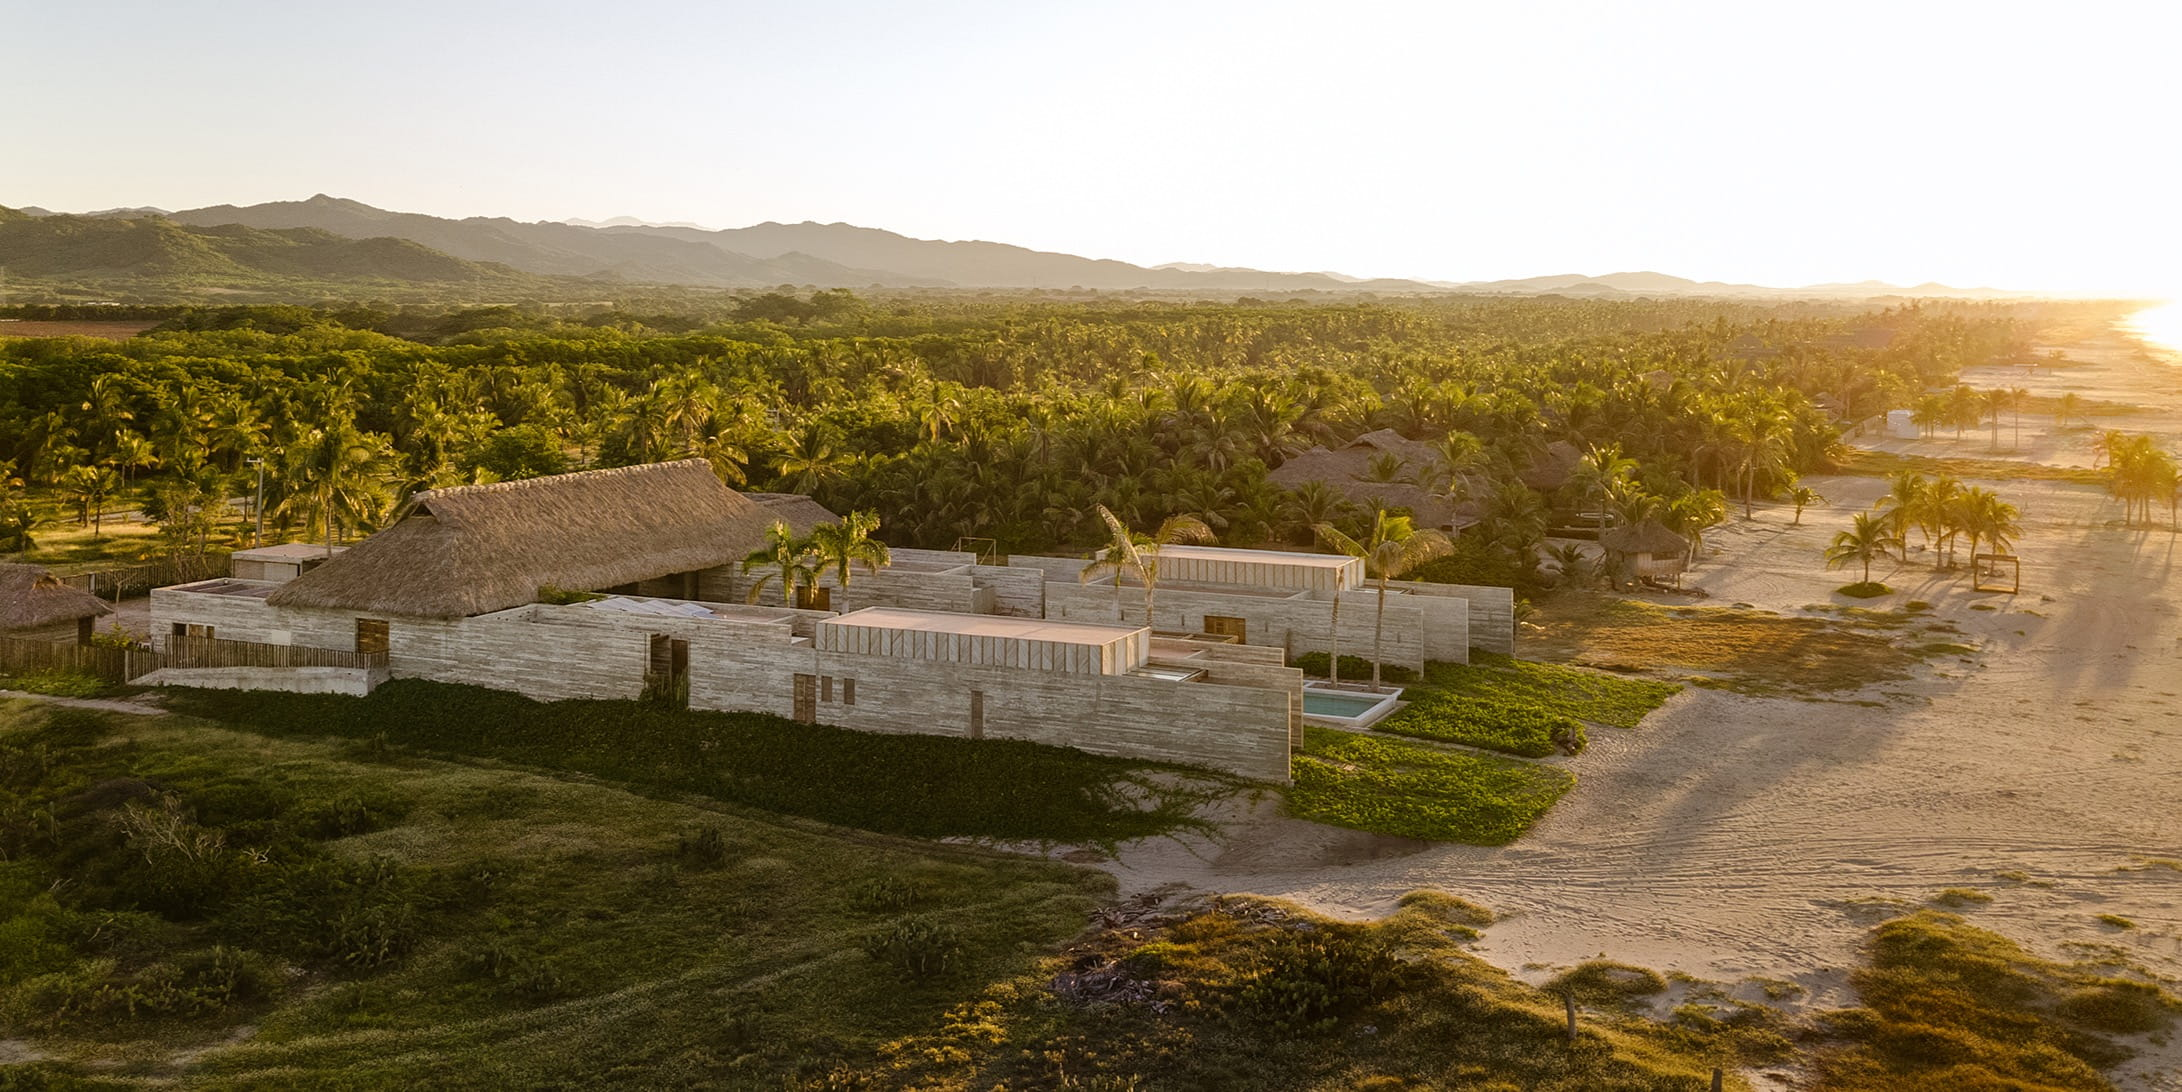 This Holiday home is grounded in the locality and inspired by Oaxacan coast vernacular